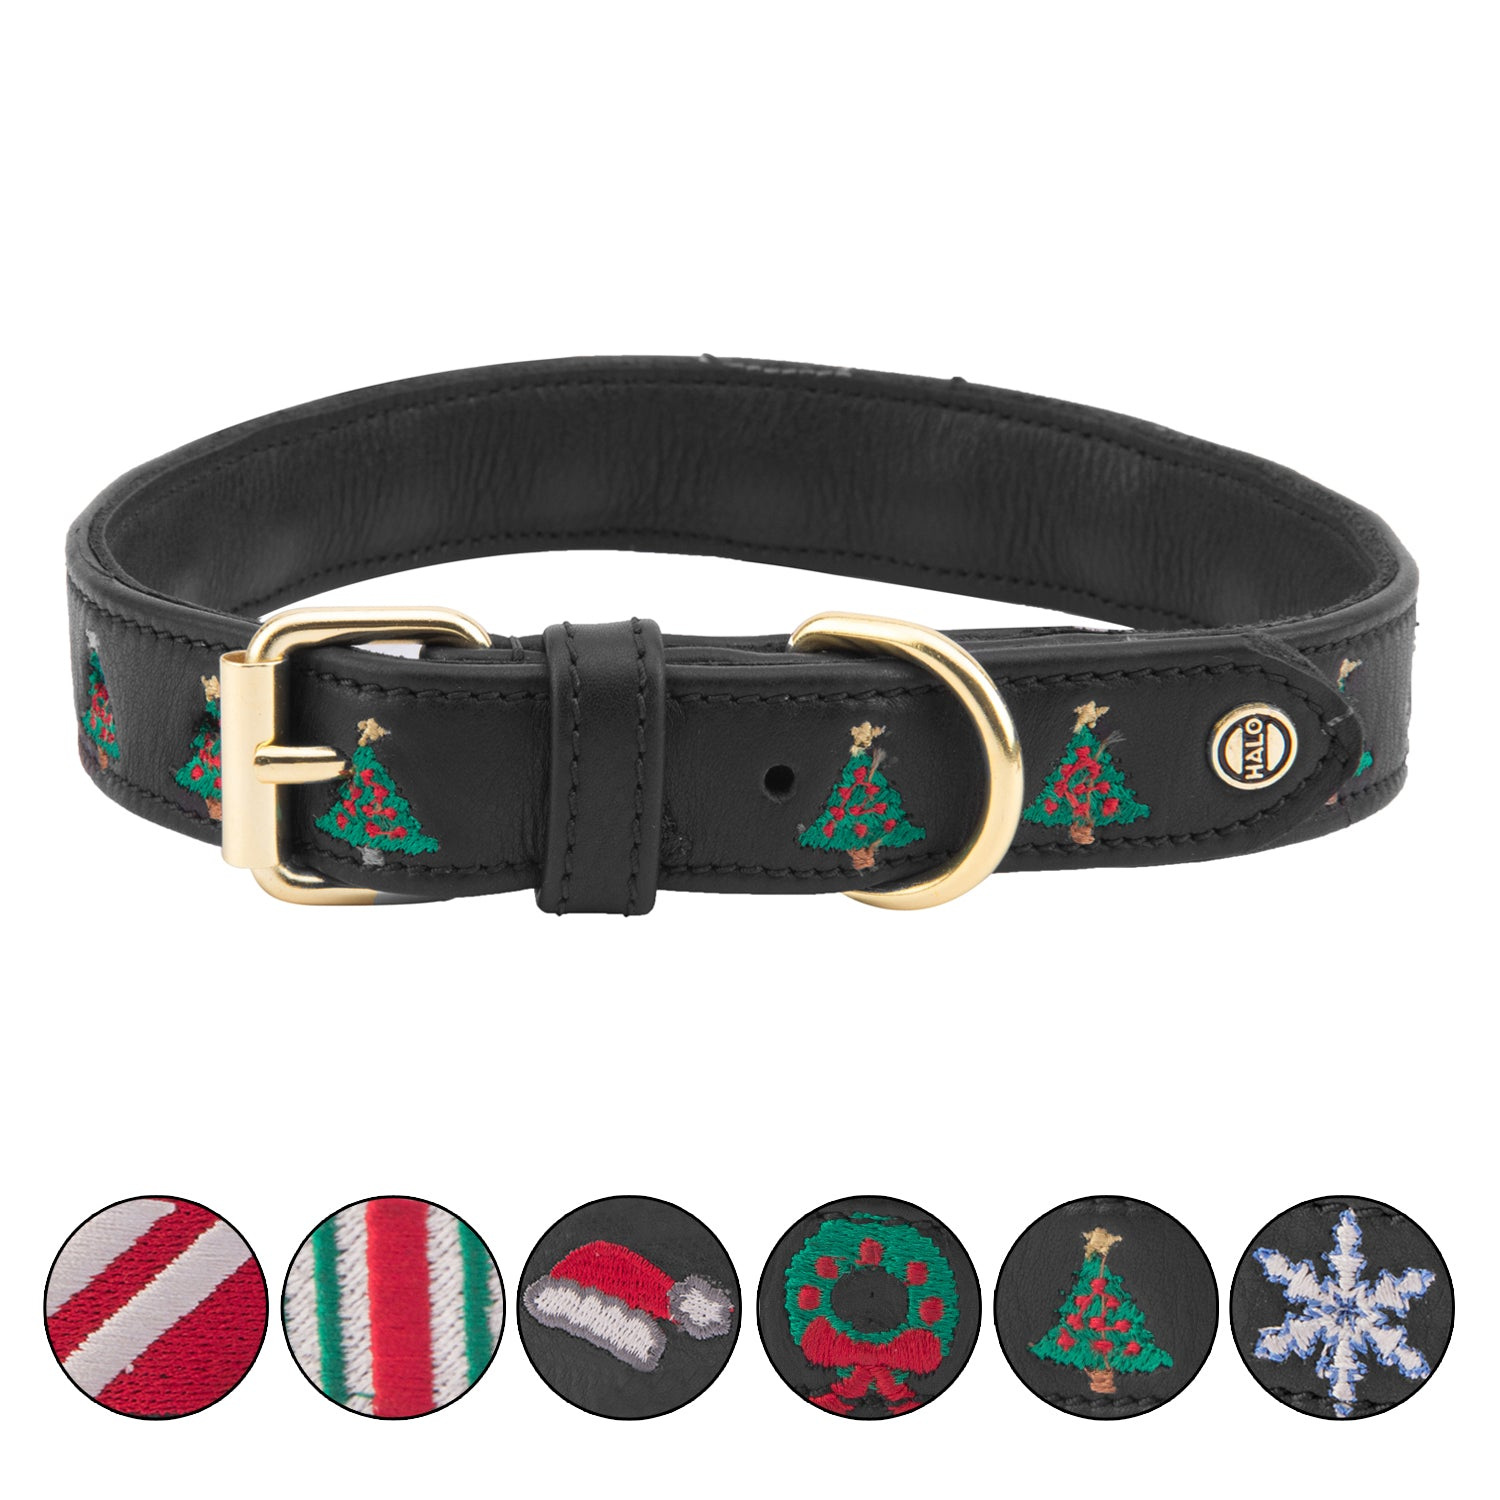 Halo Dog Collar - Leather with Christmas Christmas Tree Embroidery_1